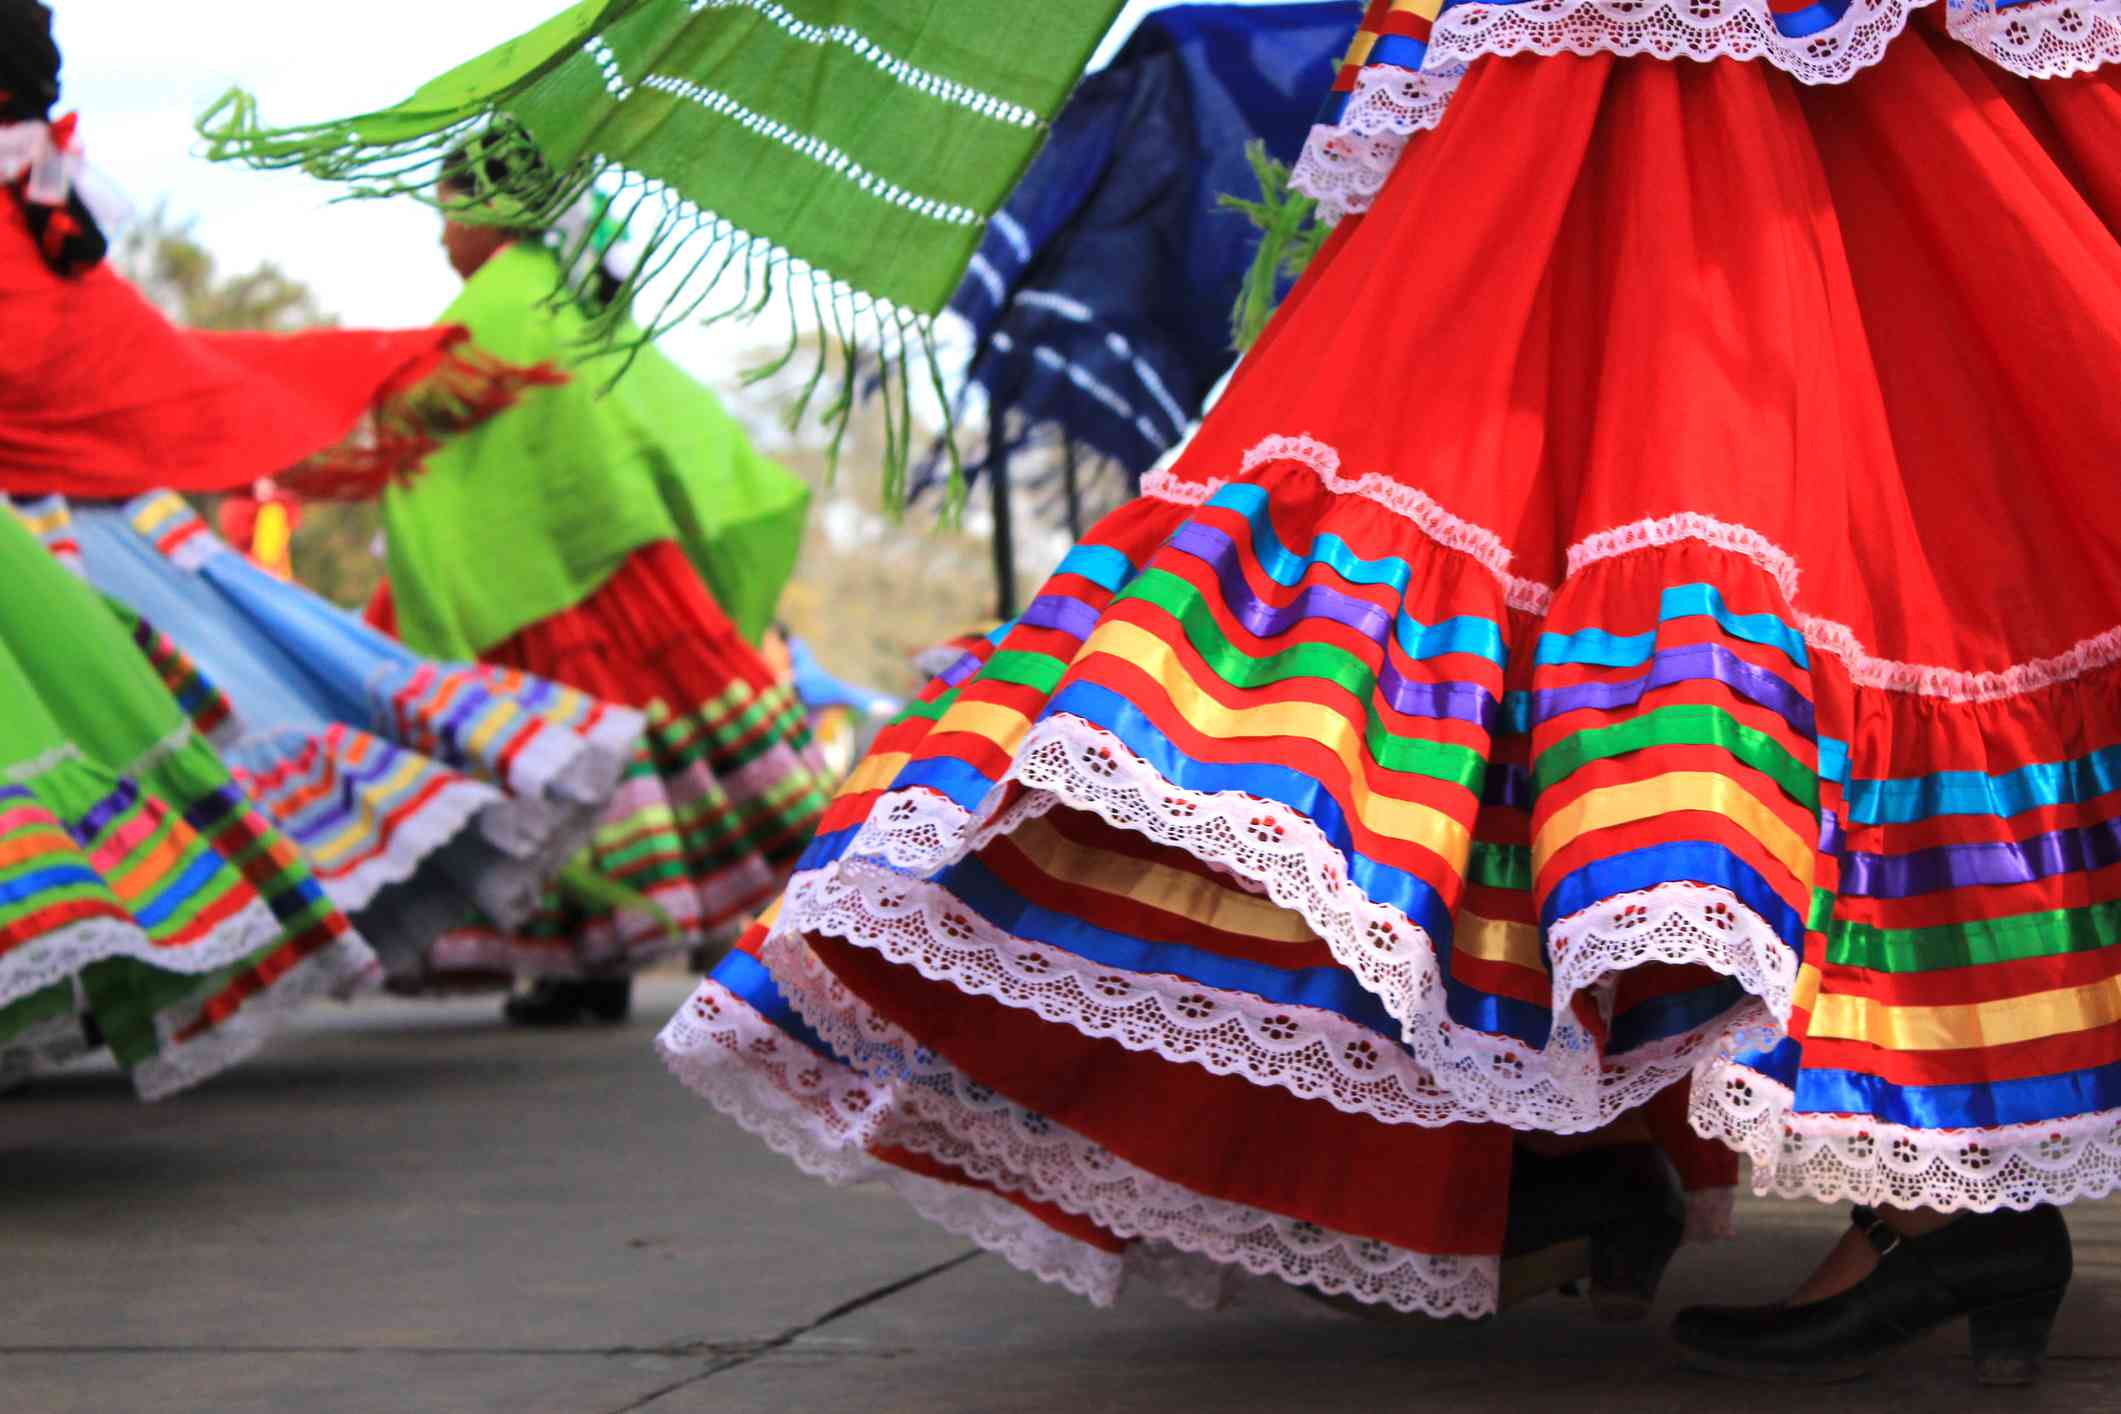 Close up of colorful skirts flying during traditional Mexican dancing. Young girls perform on a stage during an event celebrating Latino culture and heritage.